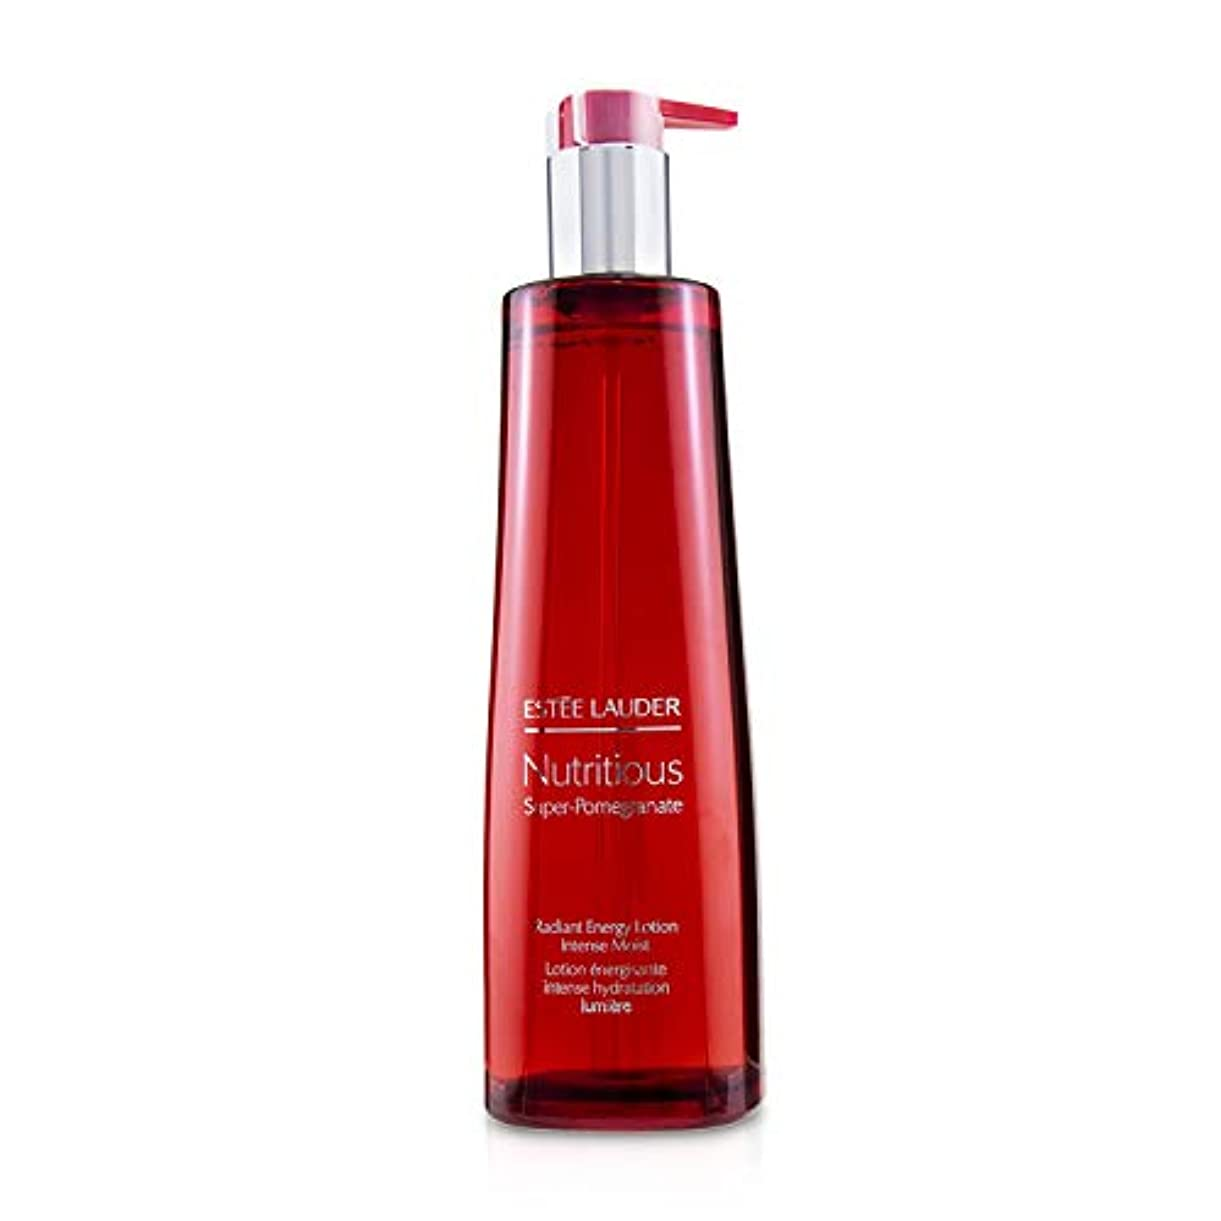 勝利したミュージカル浸食エスティ ローダー Nutritious Super-Pomegranate Radiant Energy Lotion - Intense Moist (Limited Edition) 400ml/13.5oz並行輸入品